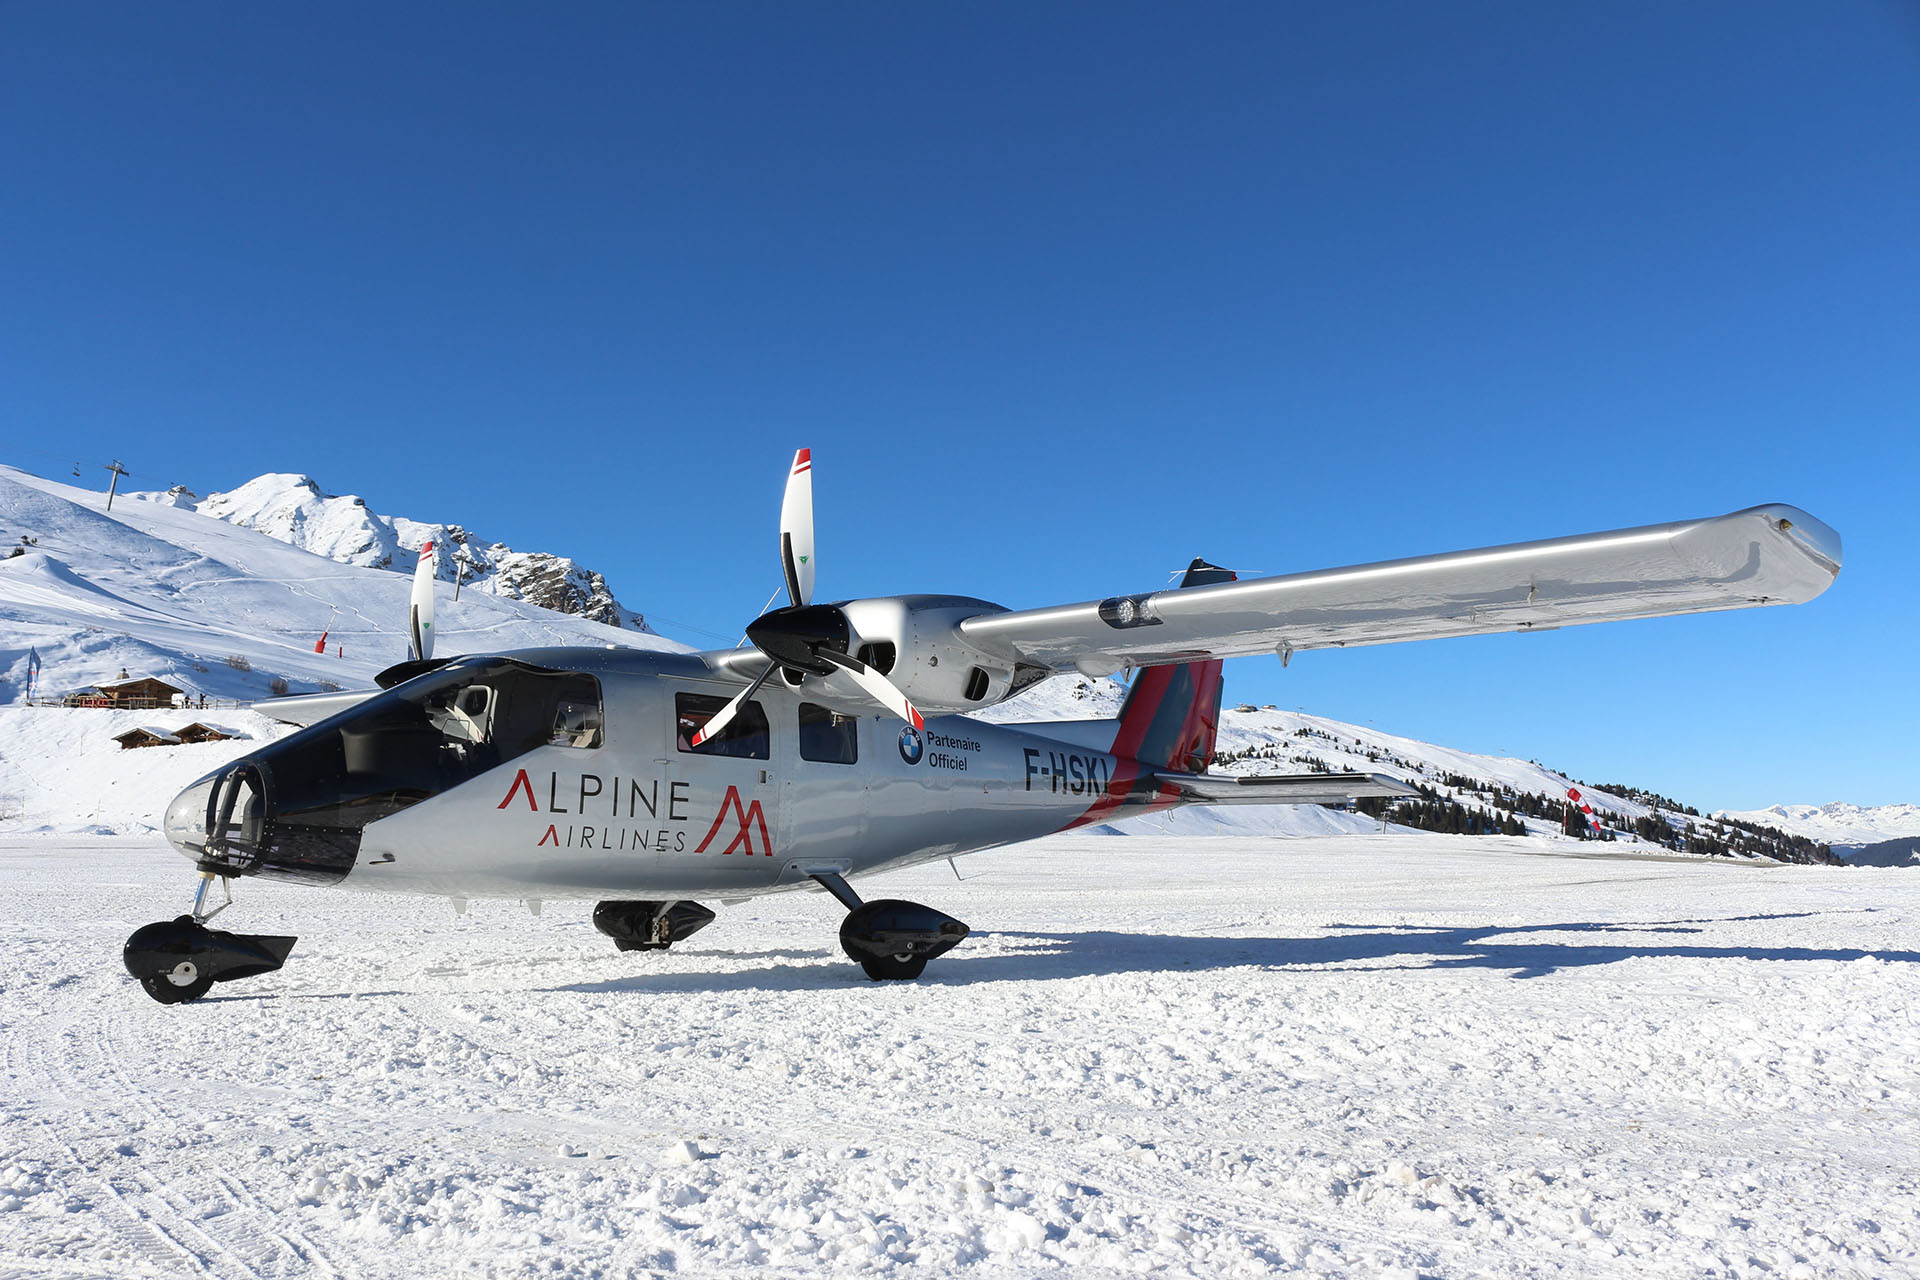 P68 Courchevel Alpine Airlines